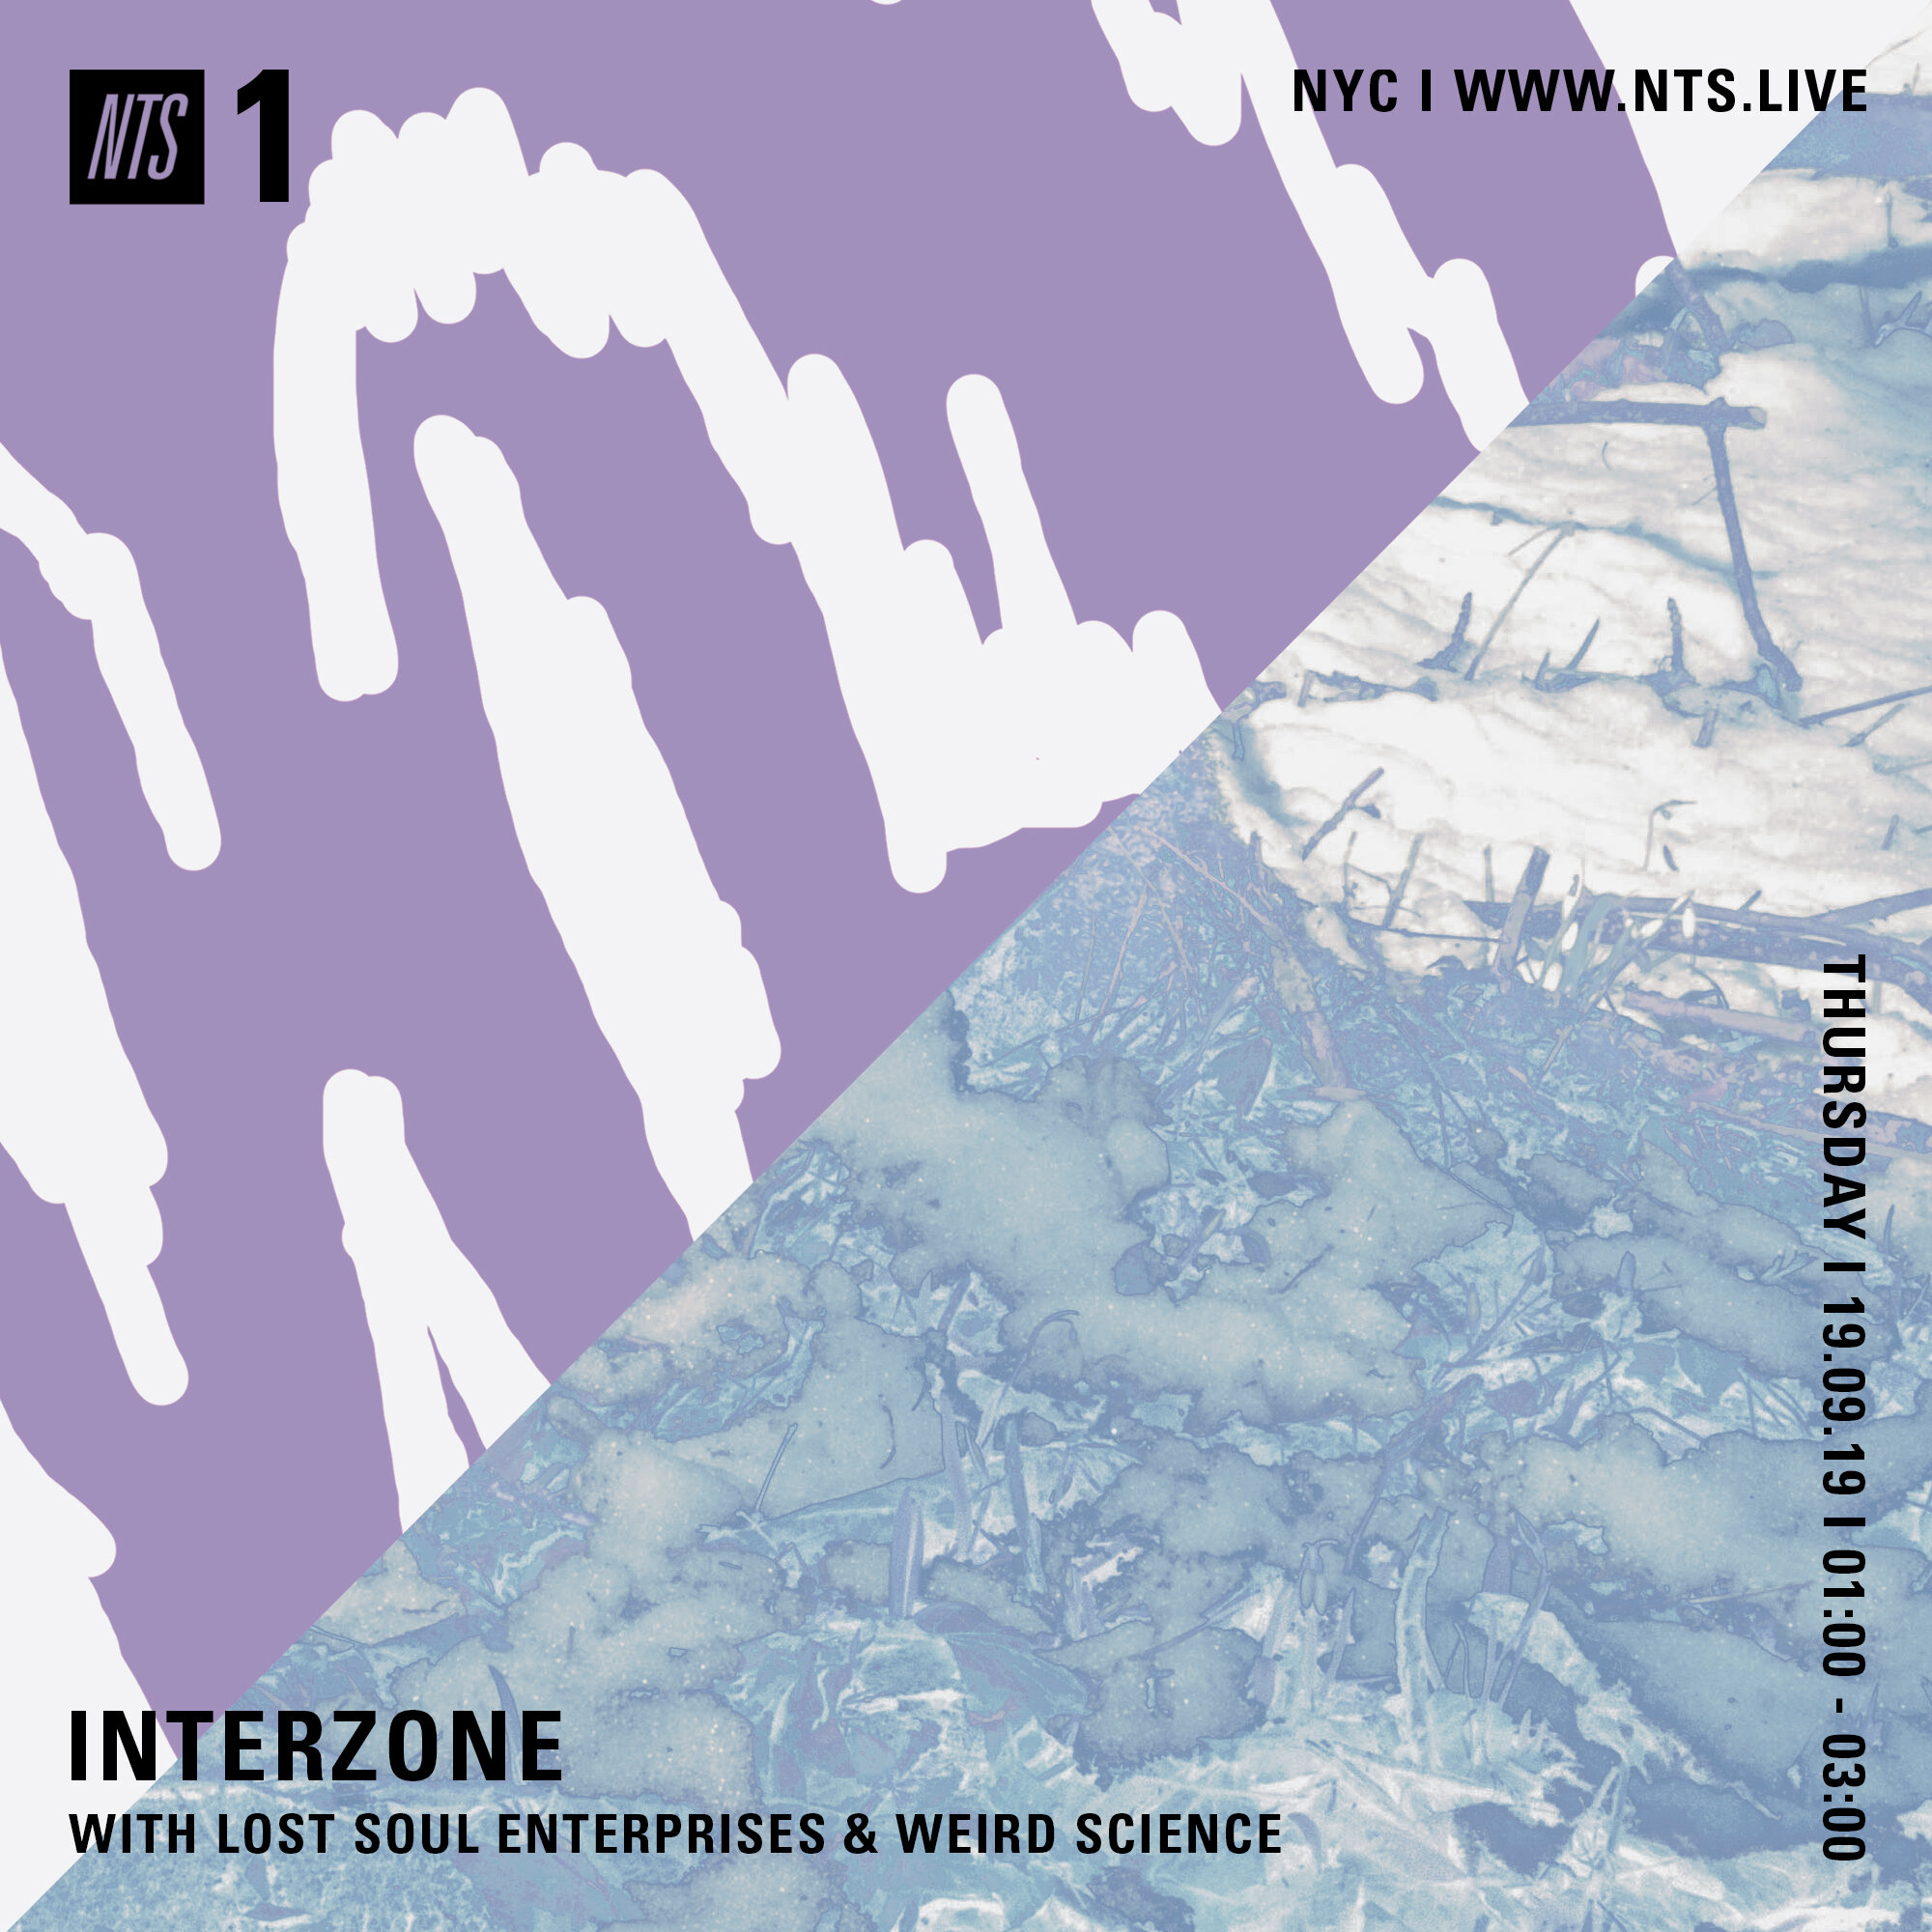 Tune into NTS Radio this evening for the first of our INTERZONE radio sessions. Tonight's show features Lost Soul Enterprises (with IZ2019 artist Nihal Ramchandani) and Weird Science.  Listen back:  https://www.nts.live/shows/guests/episodes/interzone-19th-september-2019